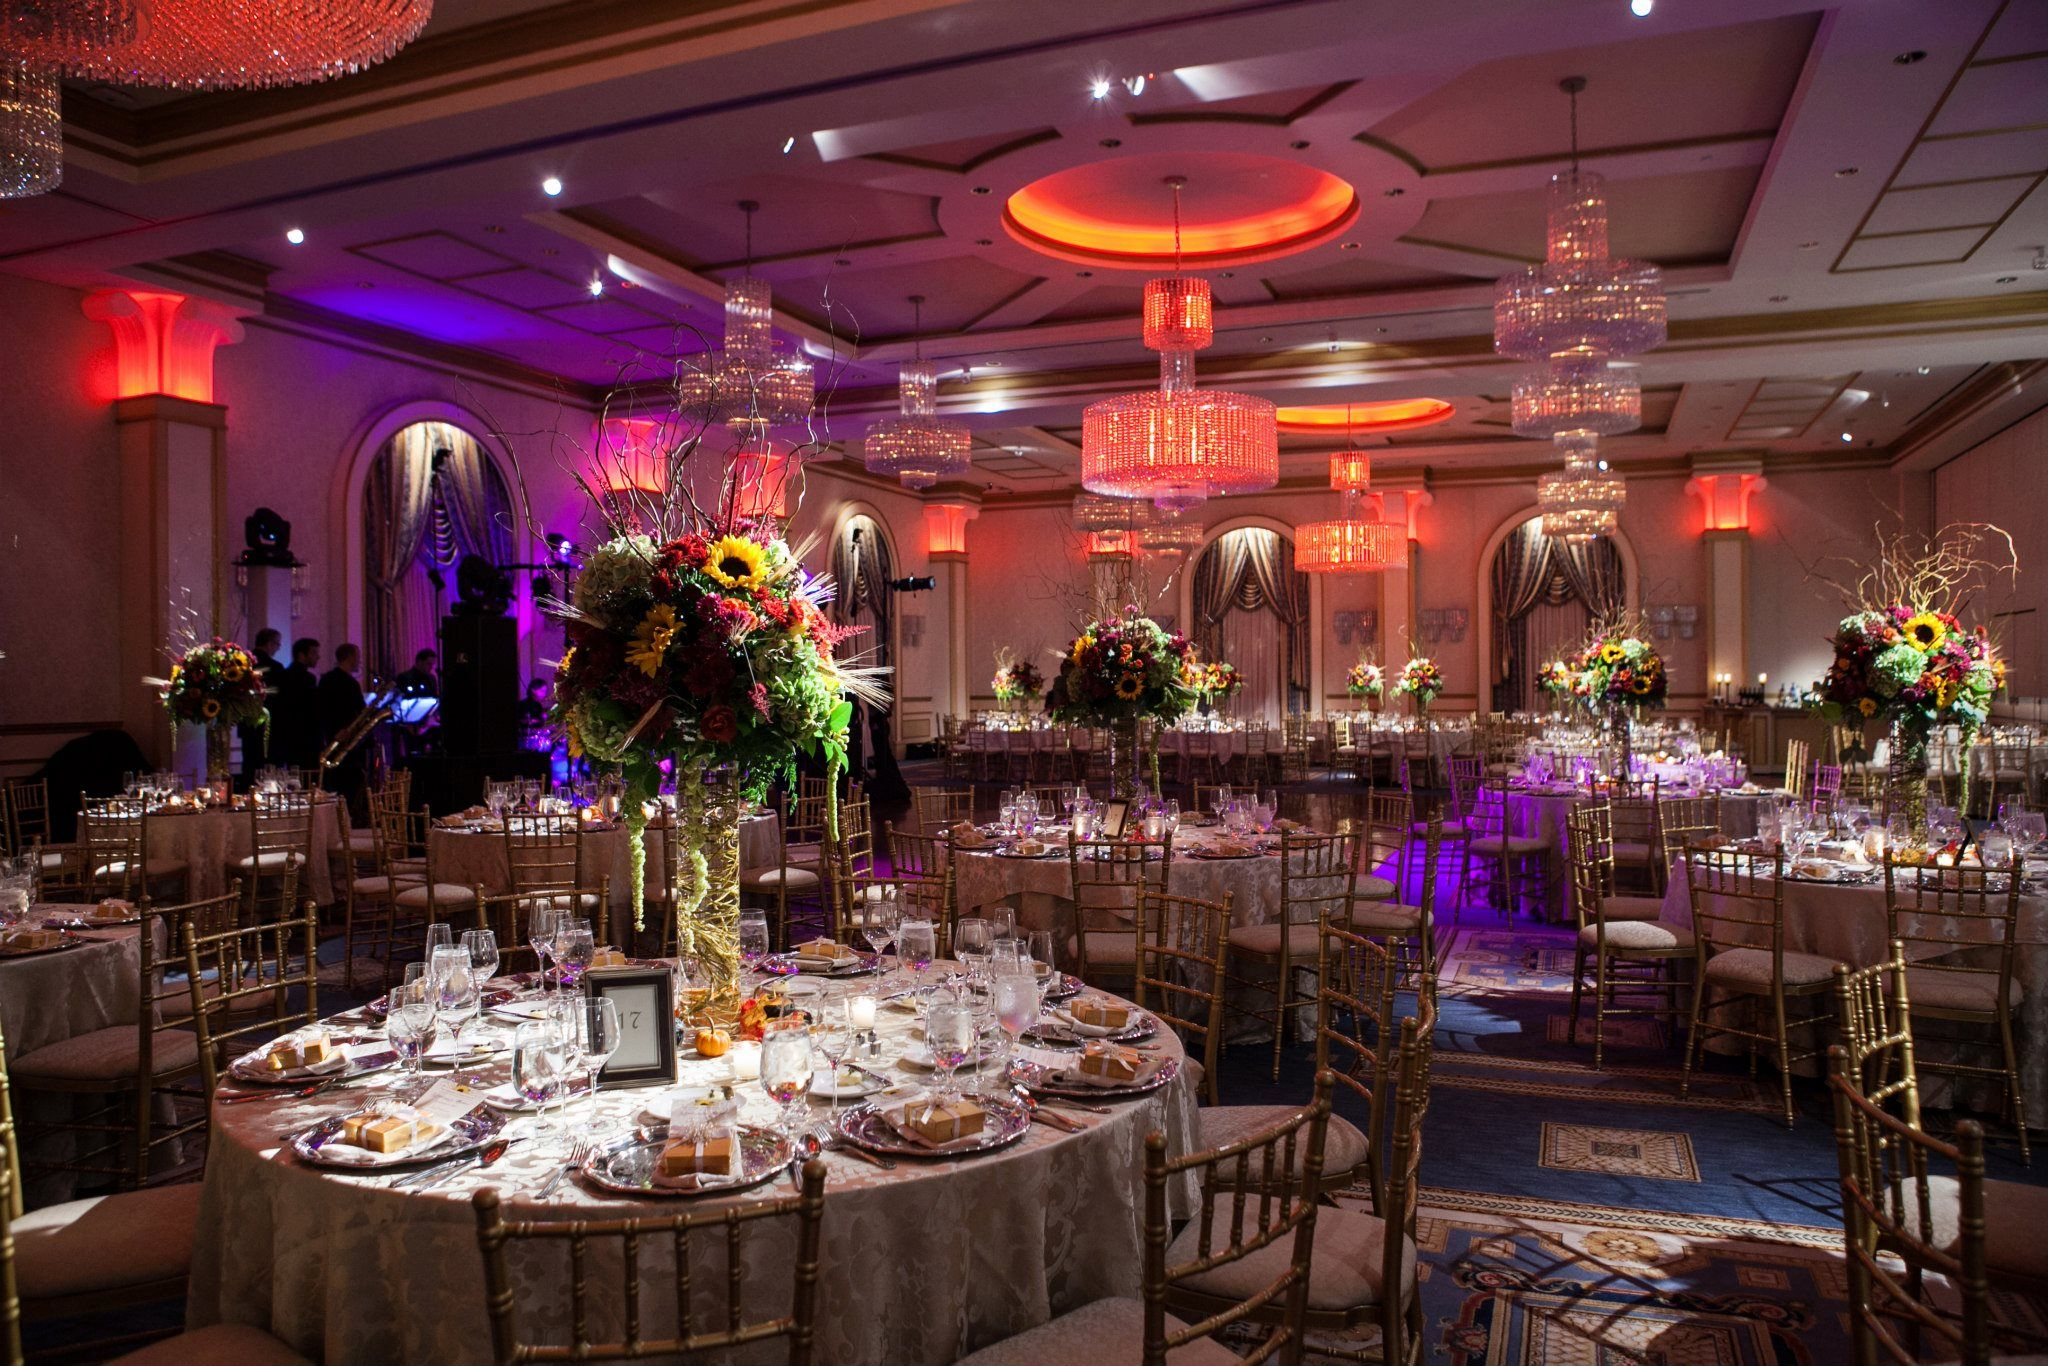 The Grand Ballroom With Different Led Lighting Colors At A Luxury